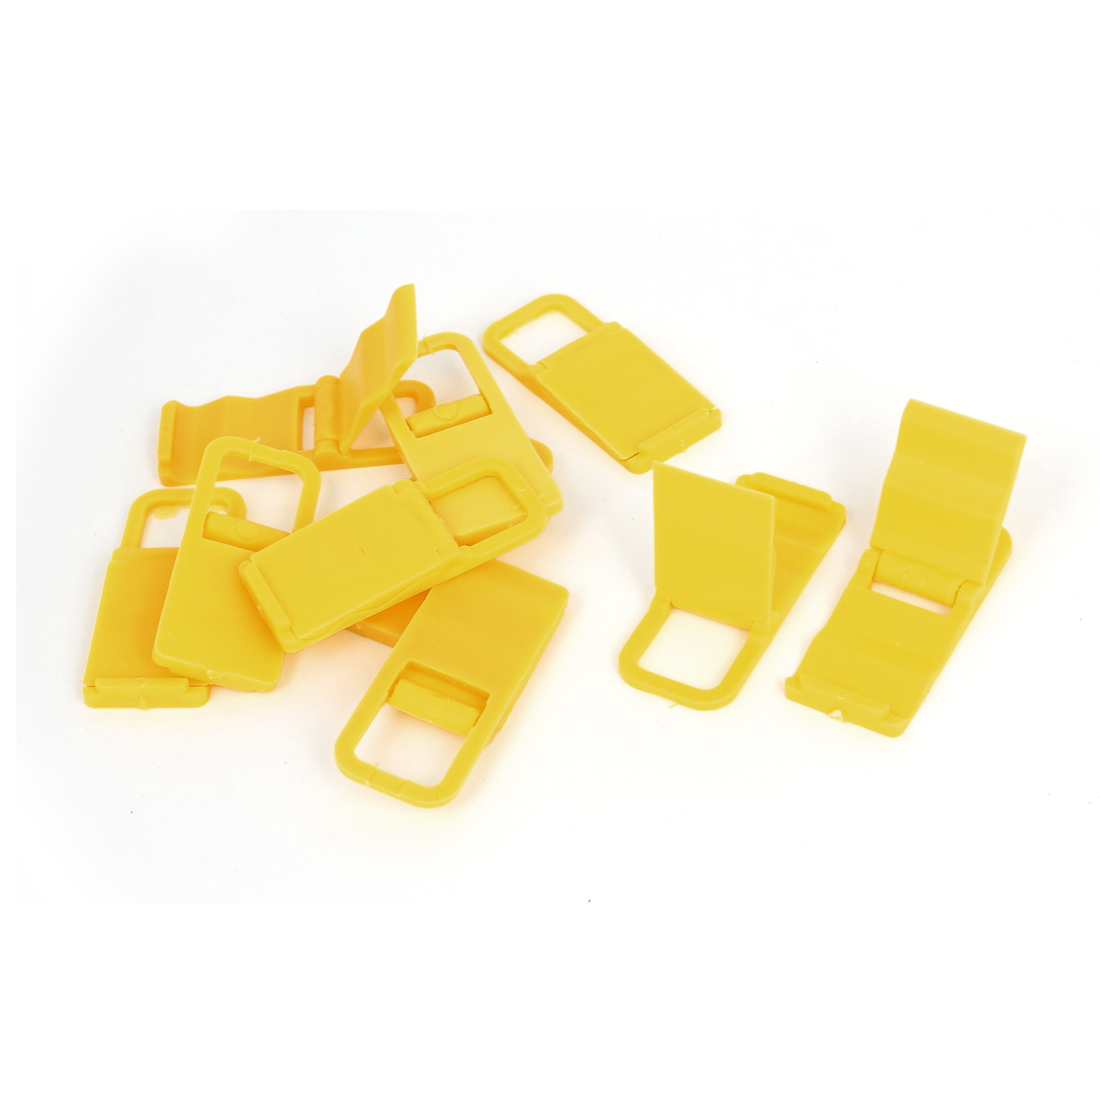 10pcs Plastic Beach Chair Mobile Phone Folding Holder Stand Bracket Support Yellow